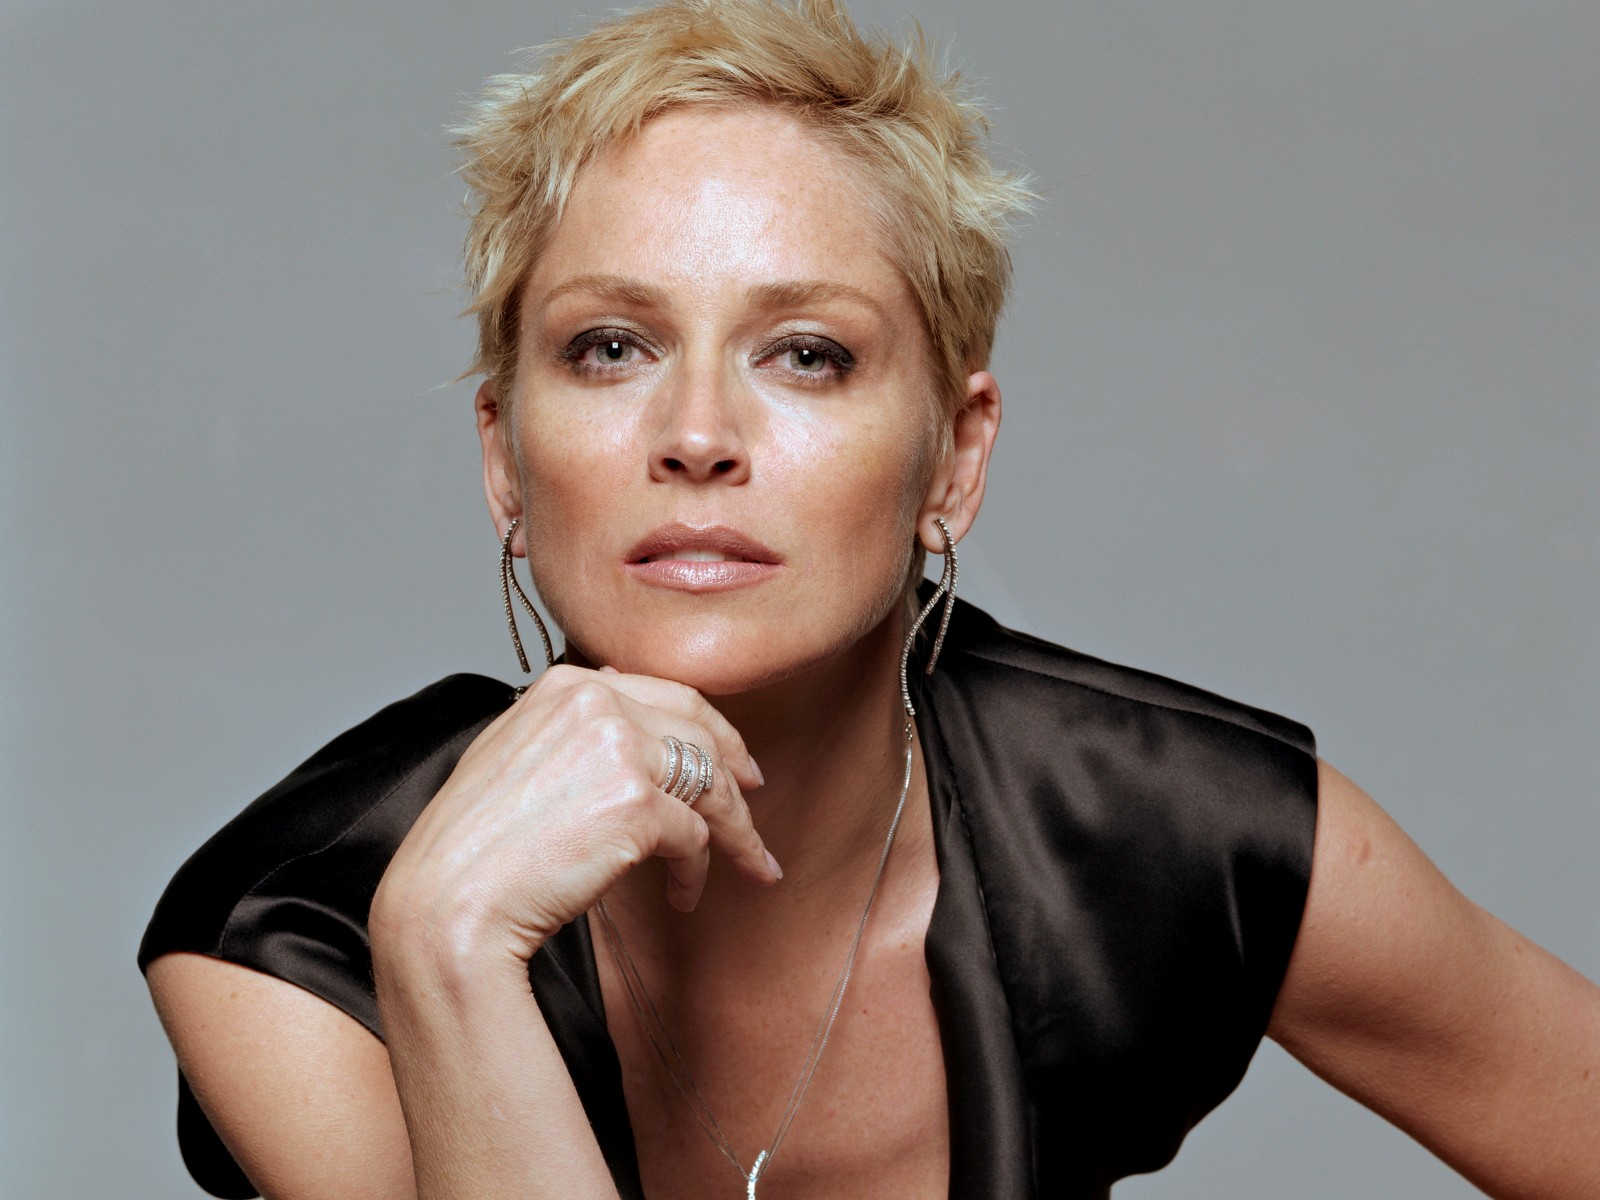 Hot Babes Single Sharon Stone Hd Wallpapers 2012 2013